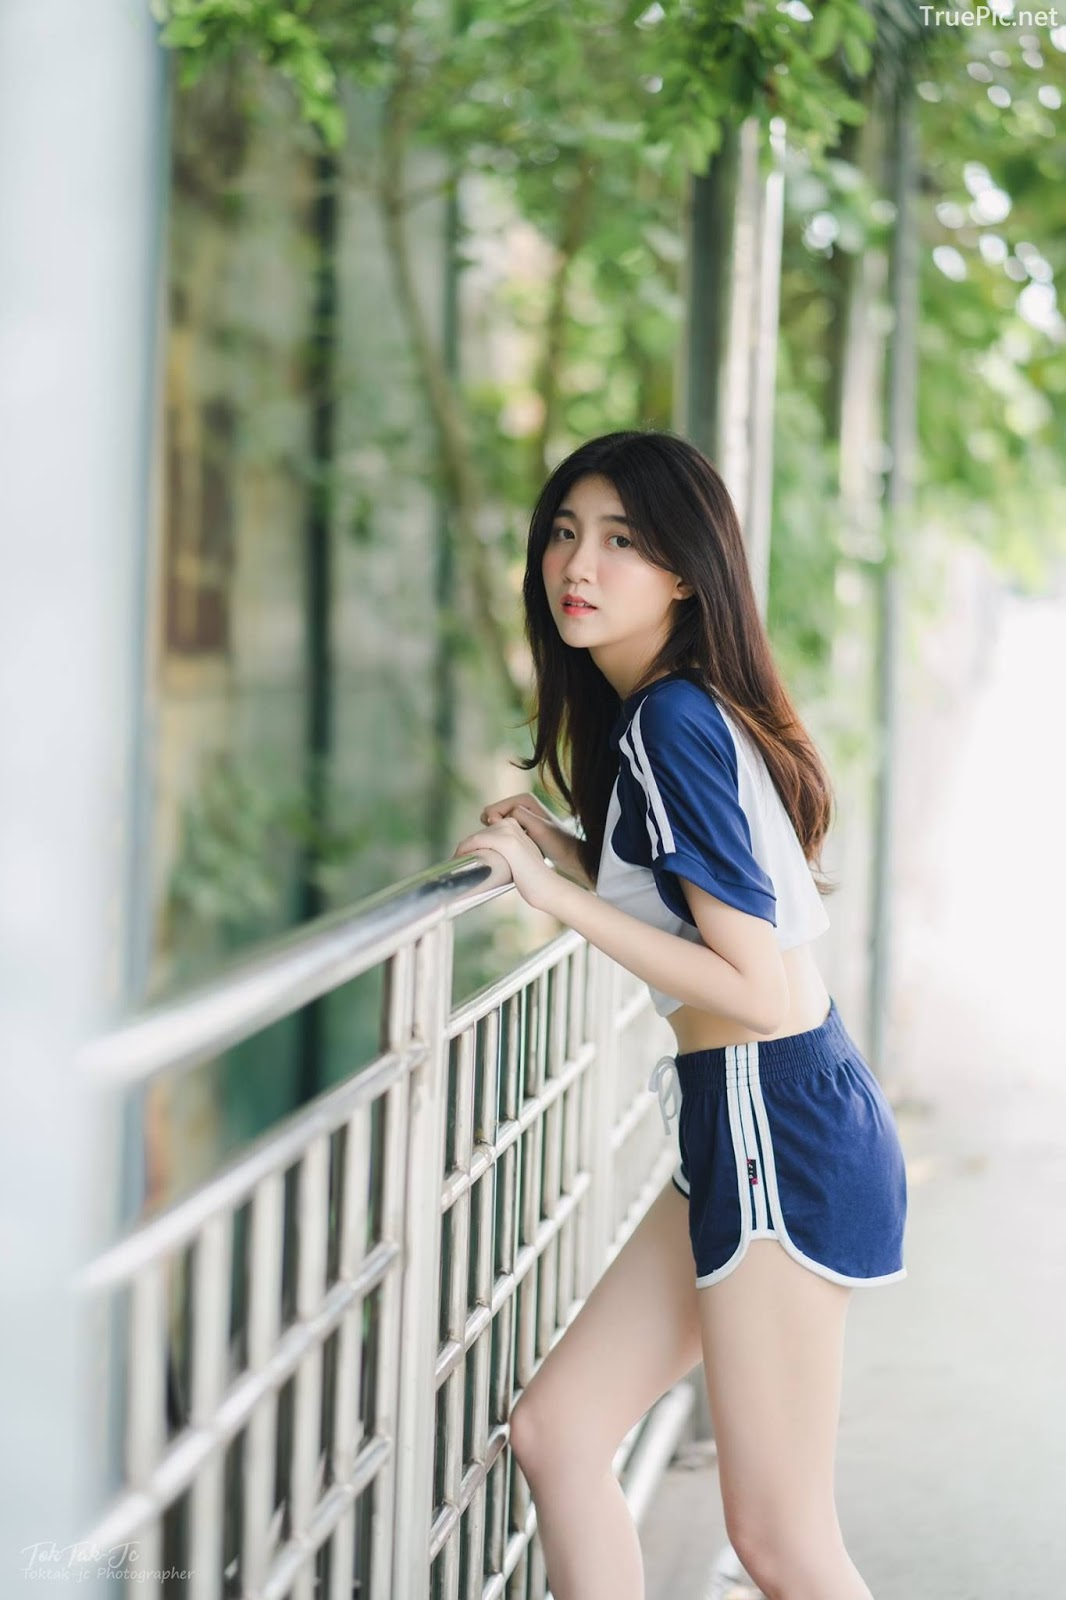 Hot Girl Thailand - Sasi Ngiunwan - Scenes From an Empty City - TruePic.net - Picture 9